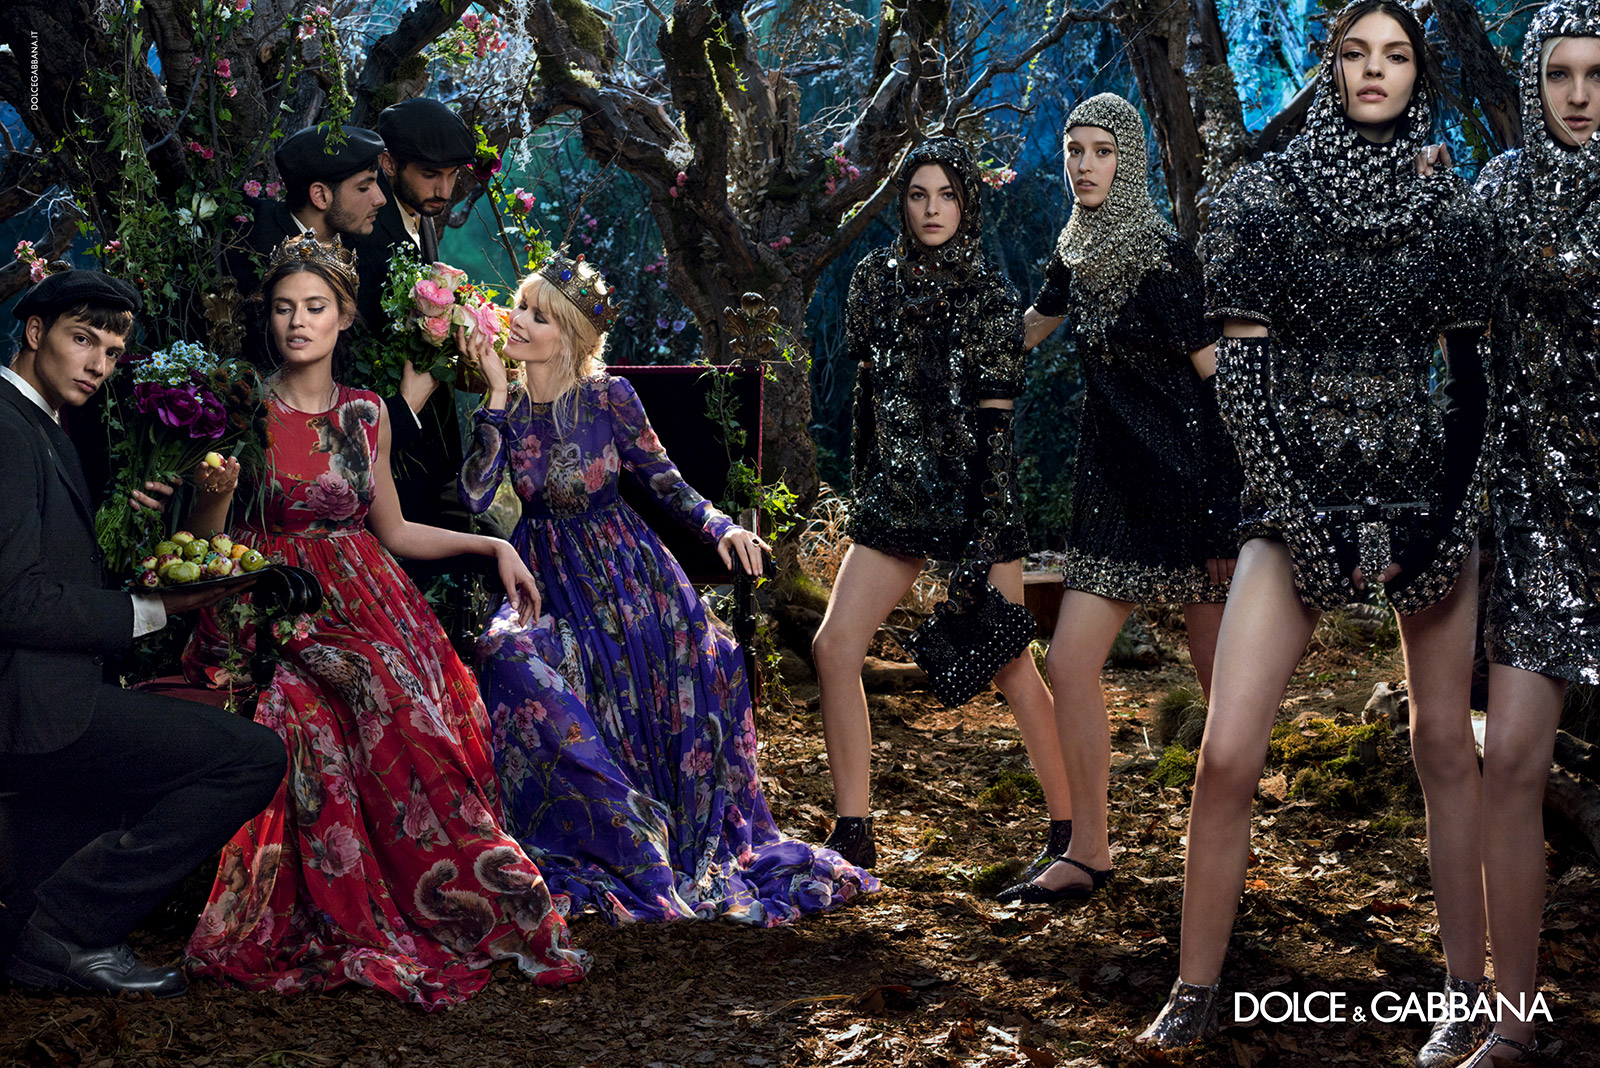 f920d920 dolce-and-gabbana-winter-2015-women-advertising-campaign-